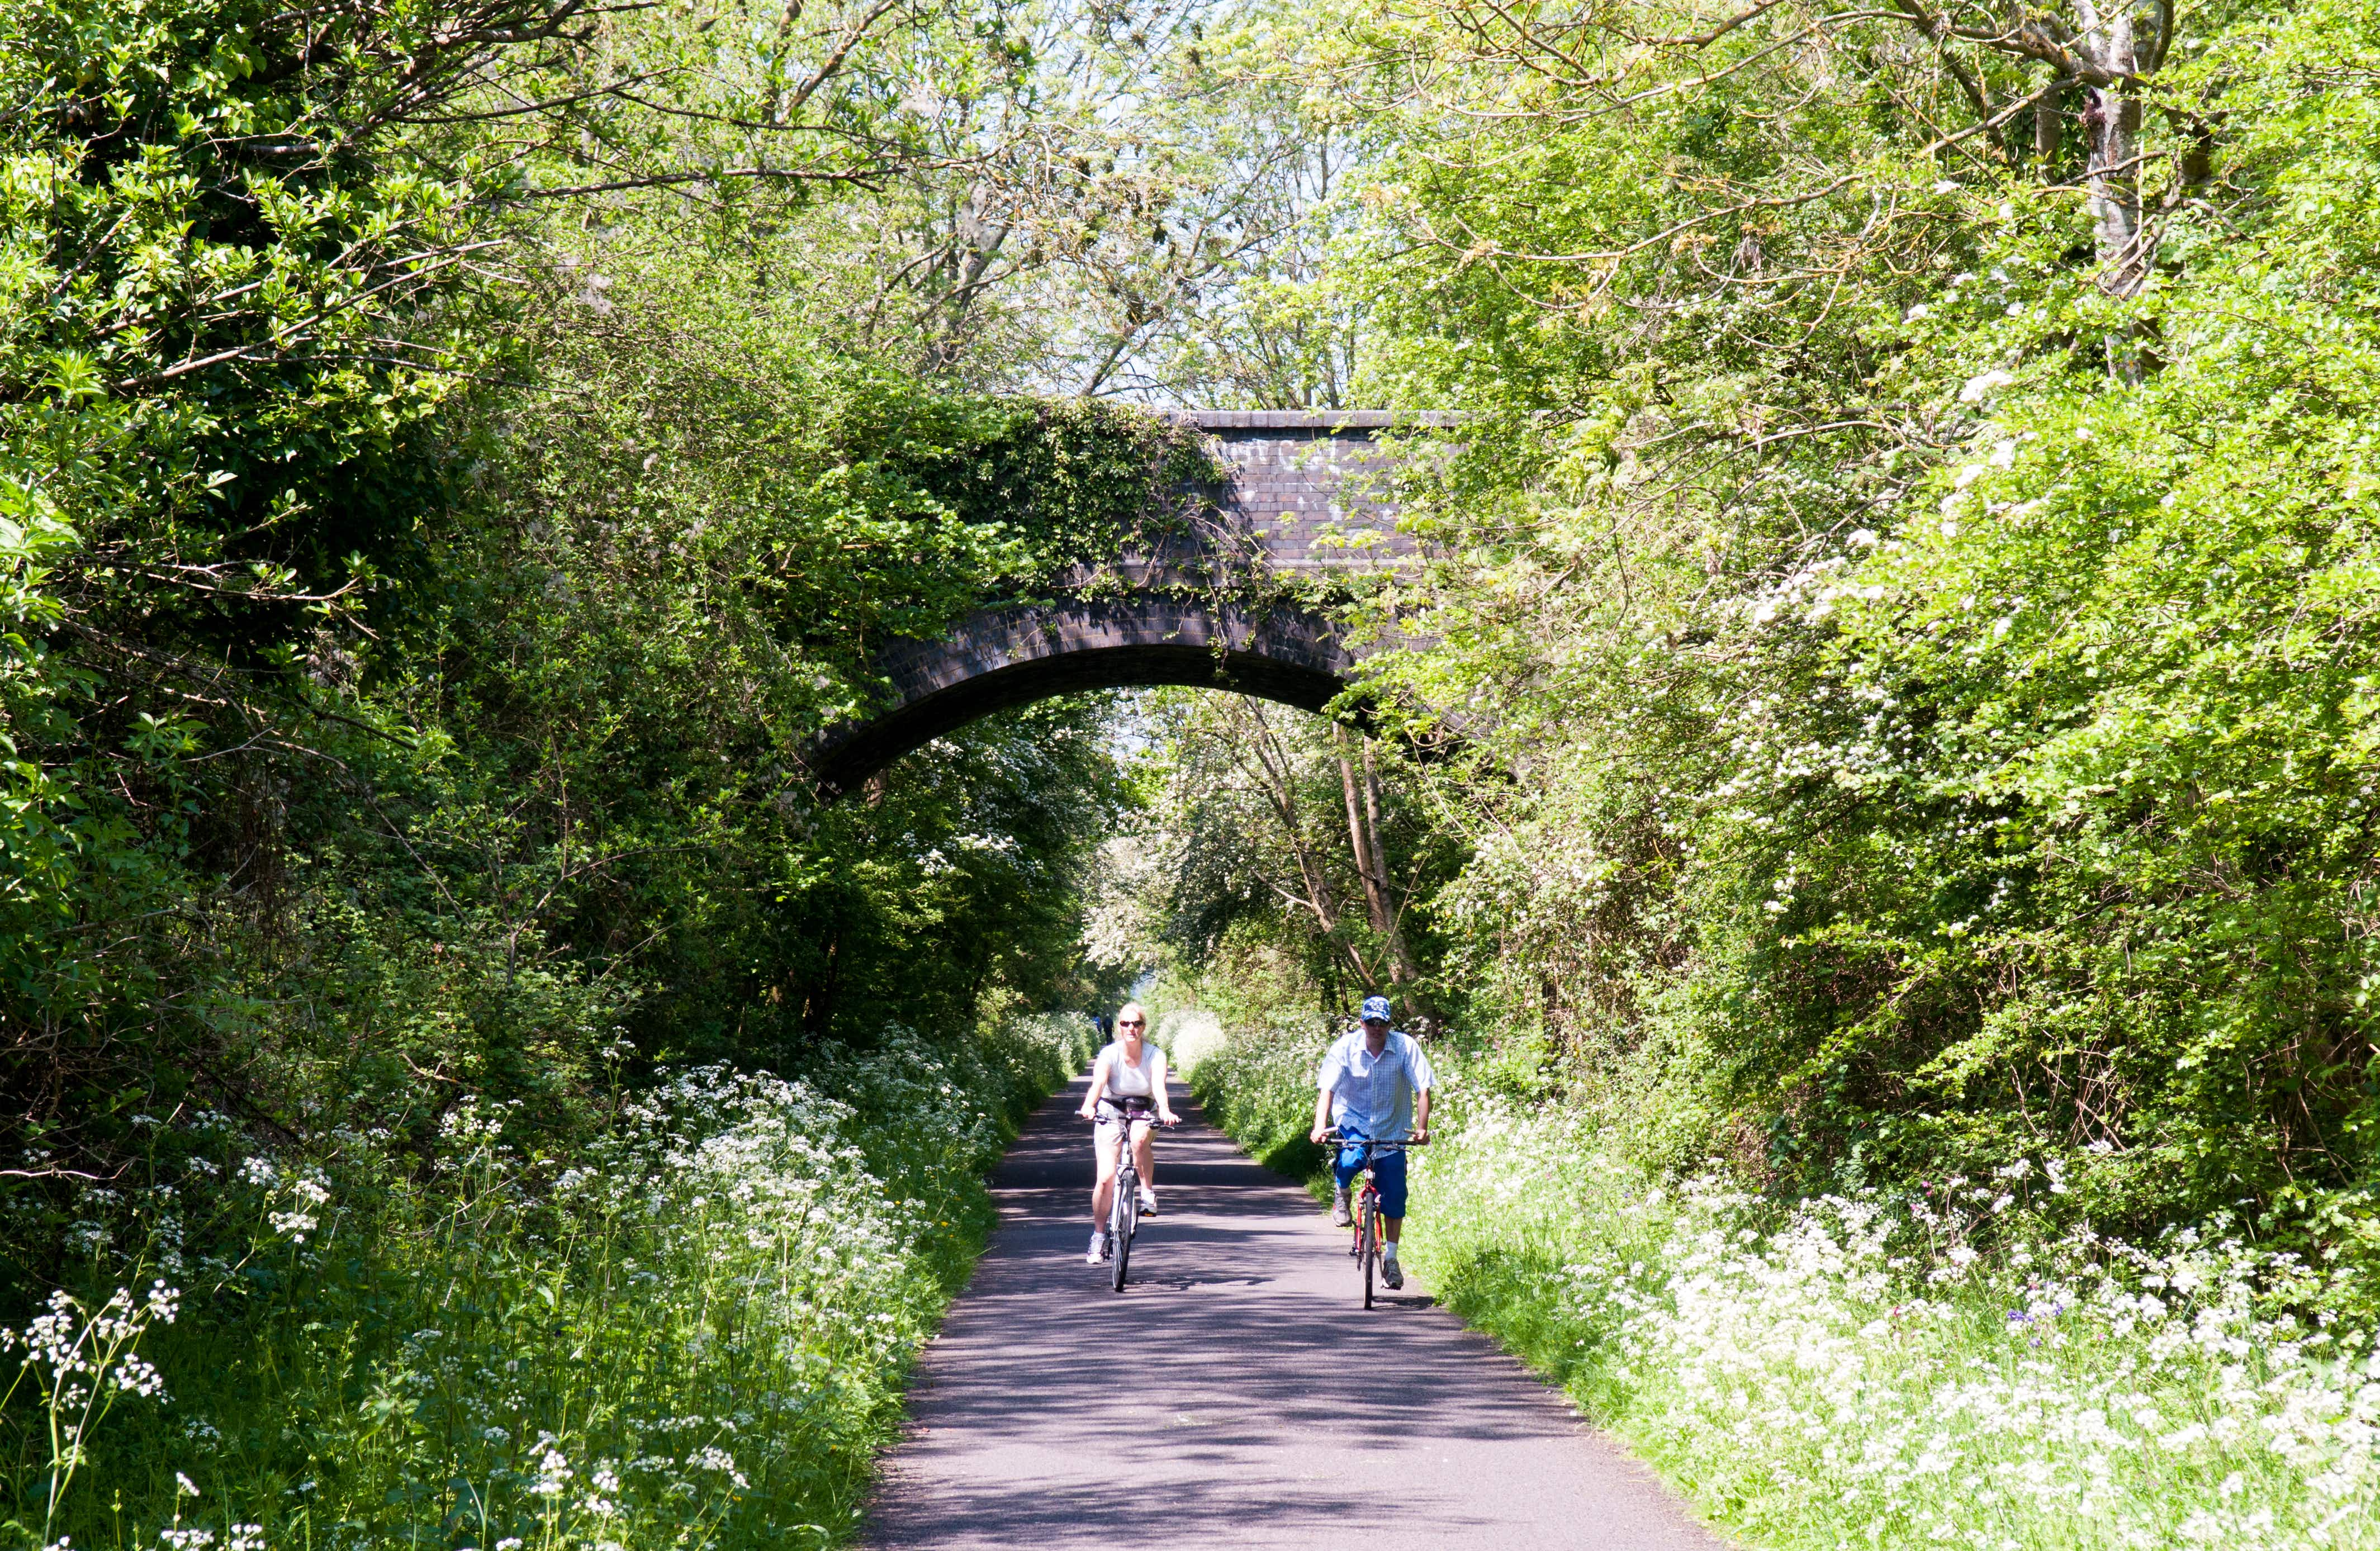 Bath, England - May 22, 2012: A couple cycling on the Bristol and Bath Railway Path in spring.